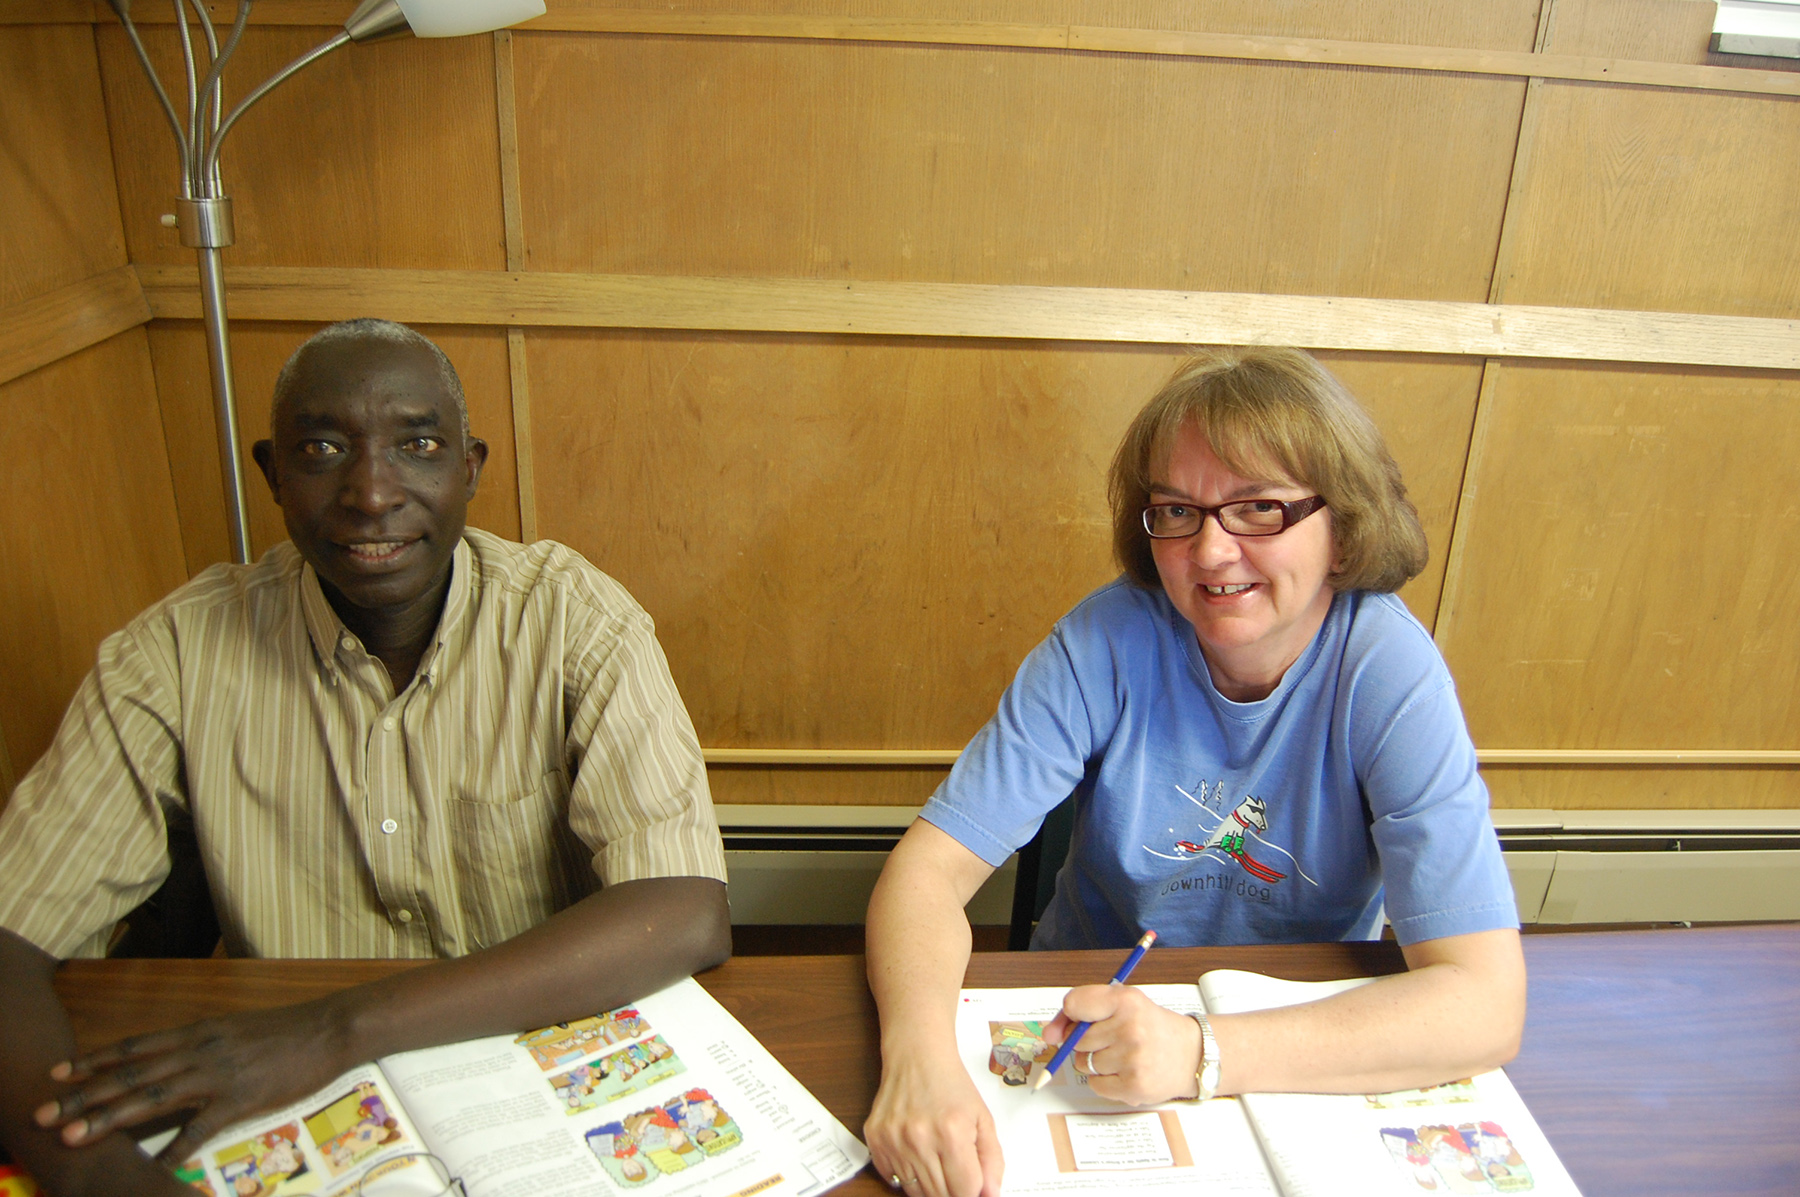 Changes in Service Delivery at Catherine McAuley Center Helps Individuals Overcome Barriers